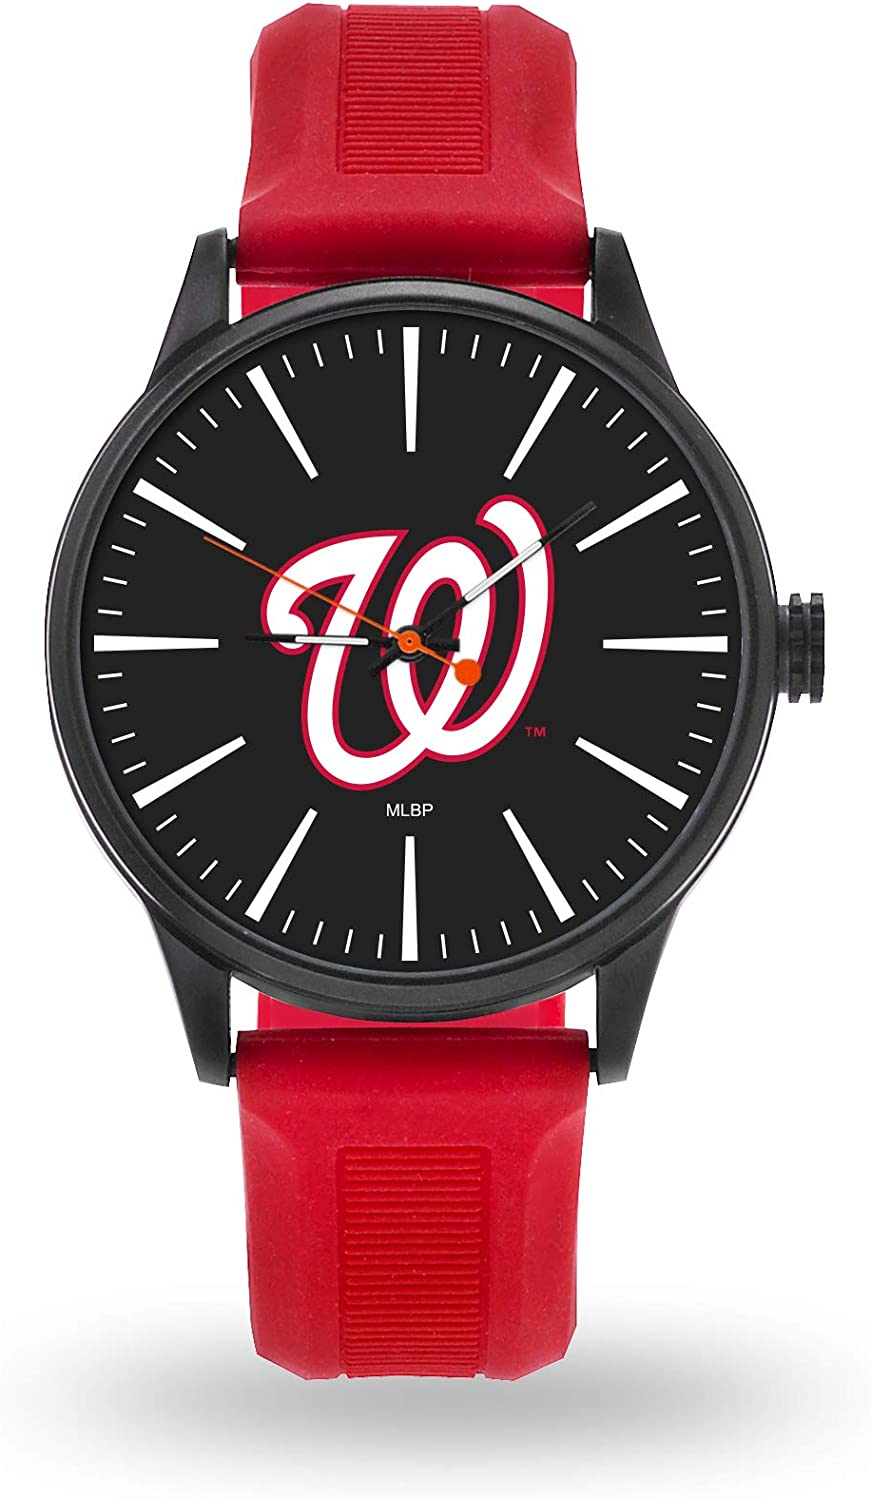 Nationals Sales for sale Spring new work one after another Cheer Design Watch Baseball Color Logo Team